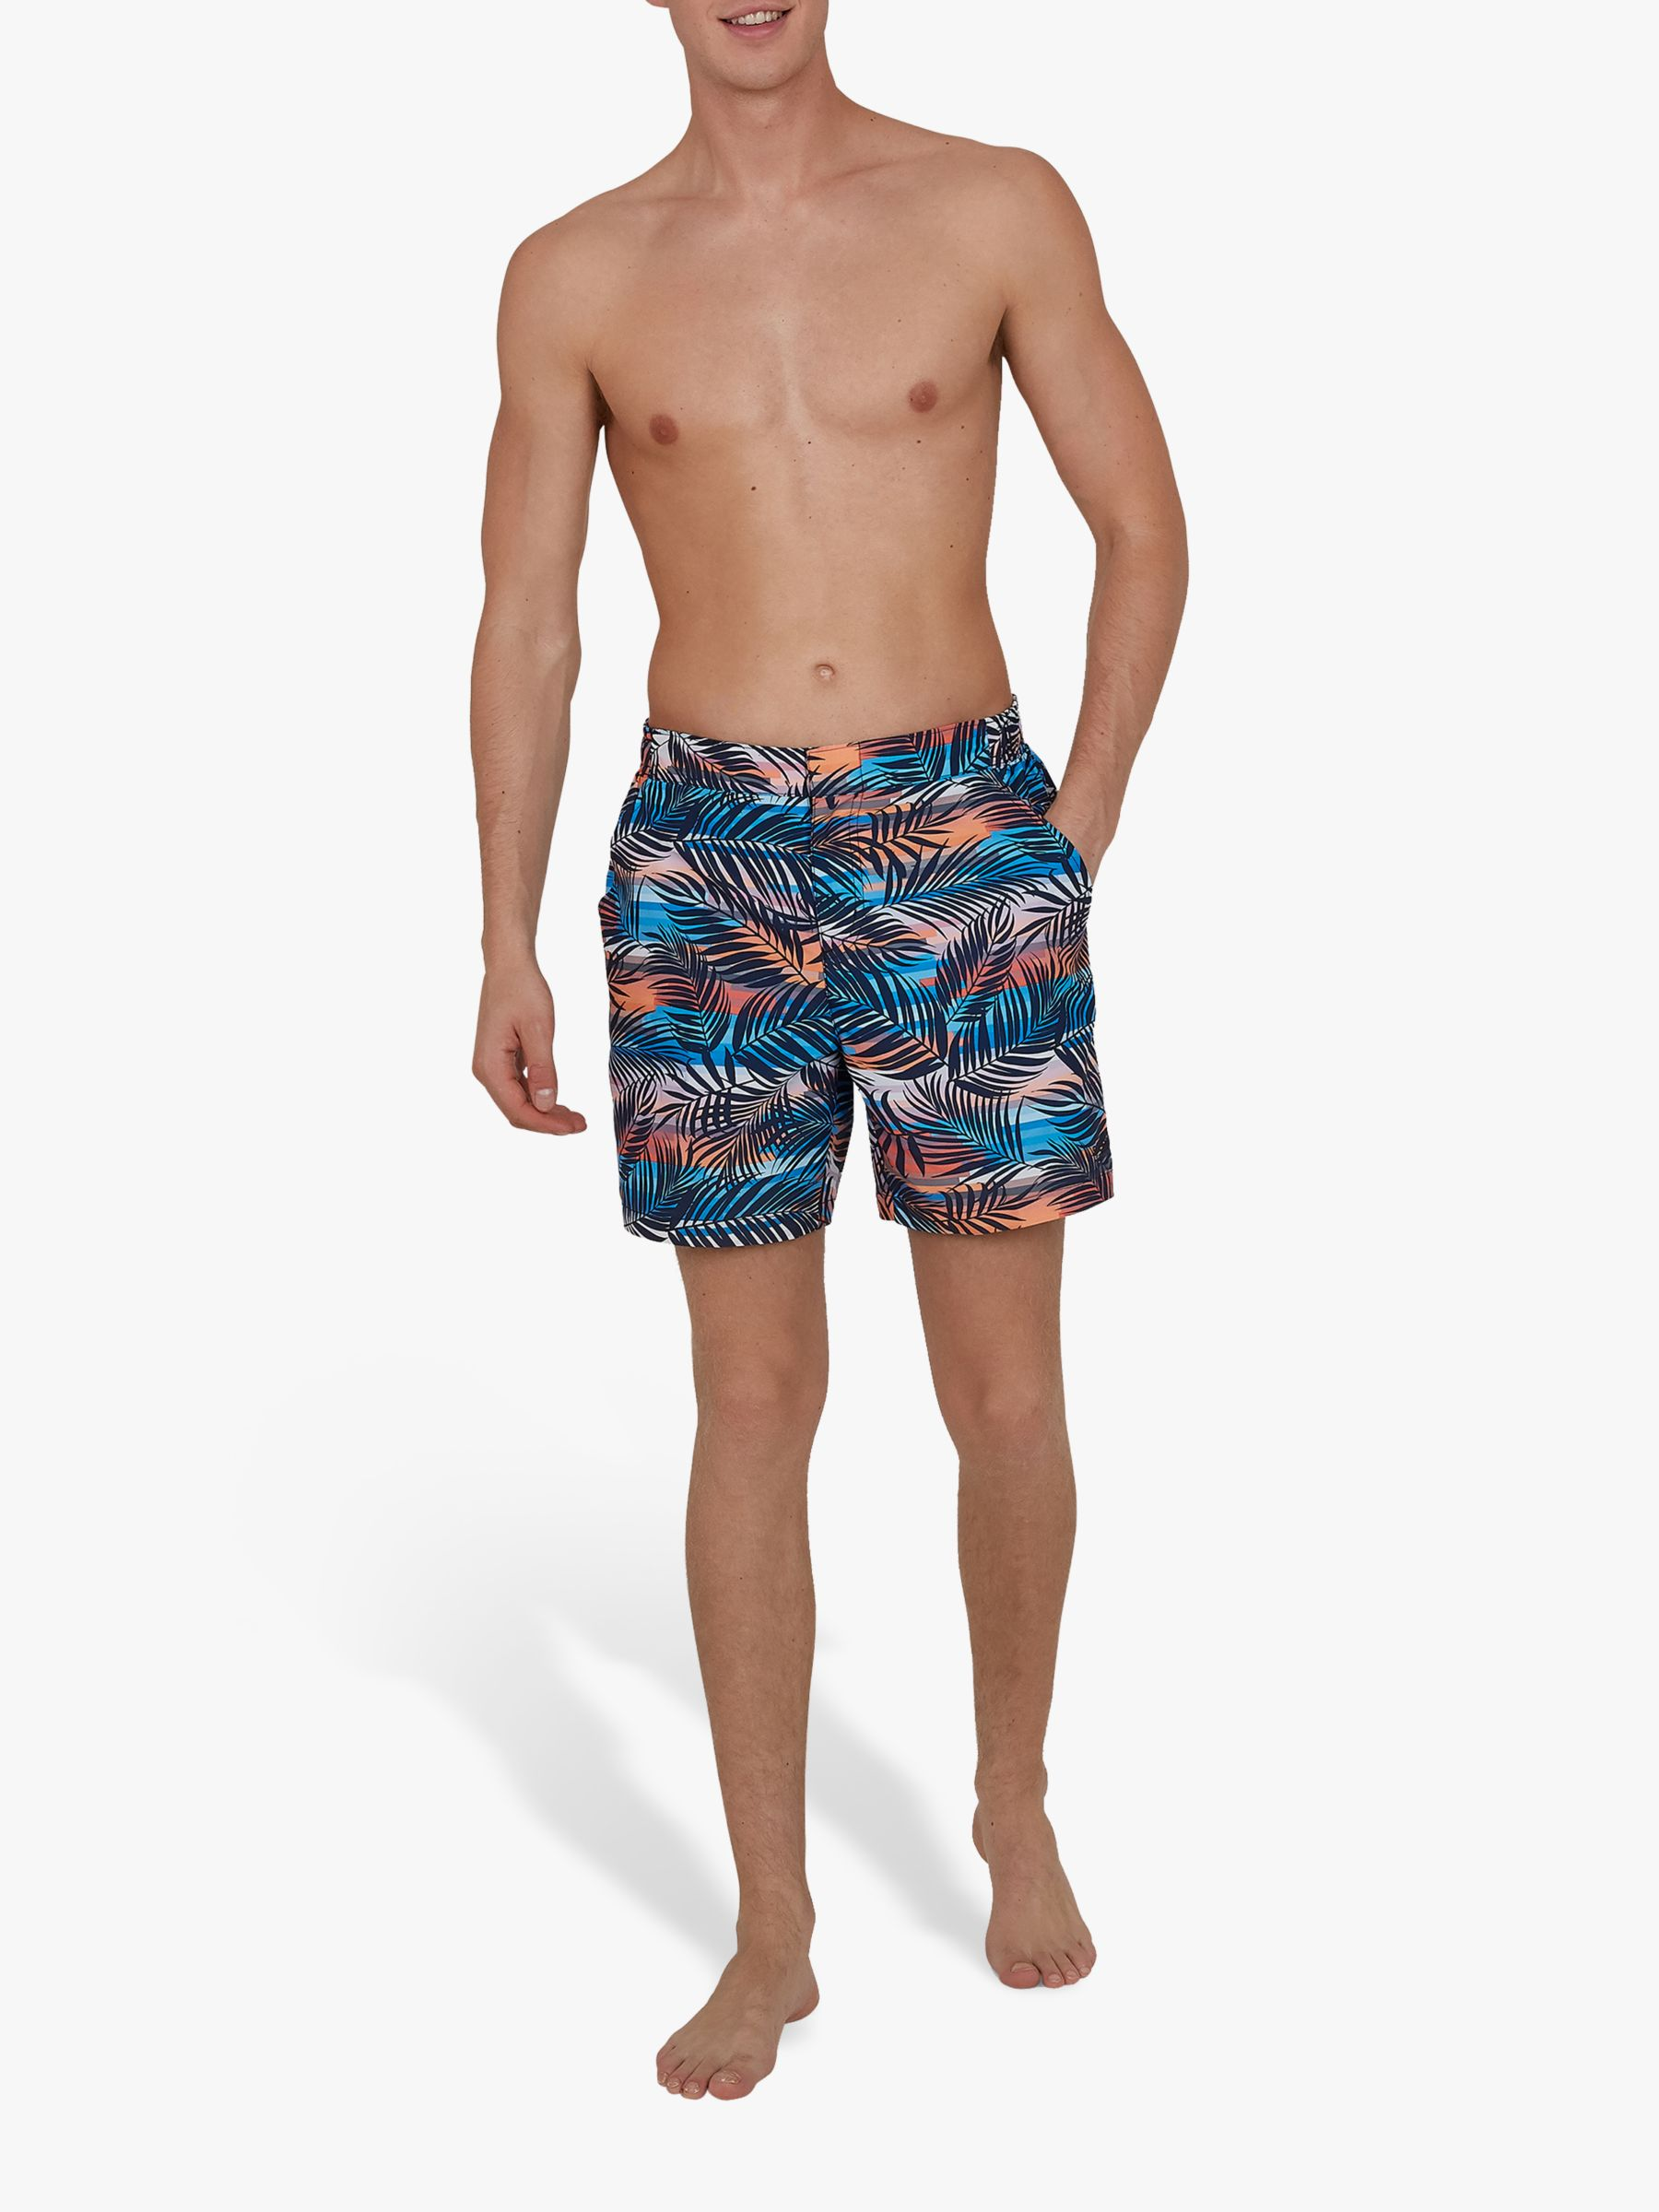 Speedo Speedo Vintage Paradise Print 16 Swim Shorts, Palm Tree Navy/Mango